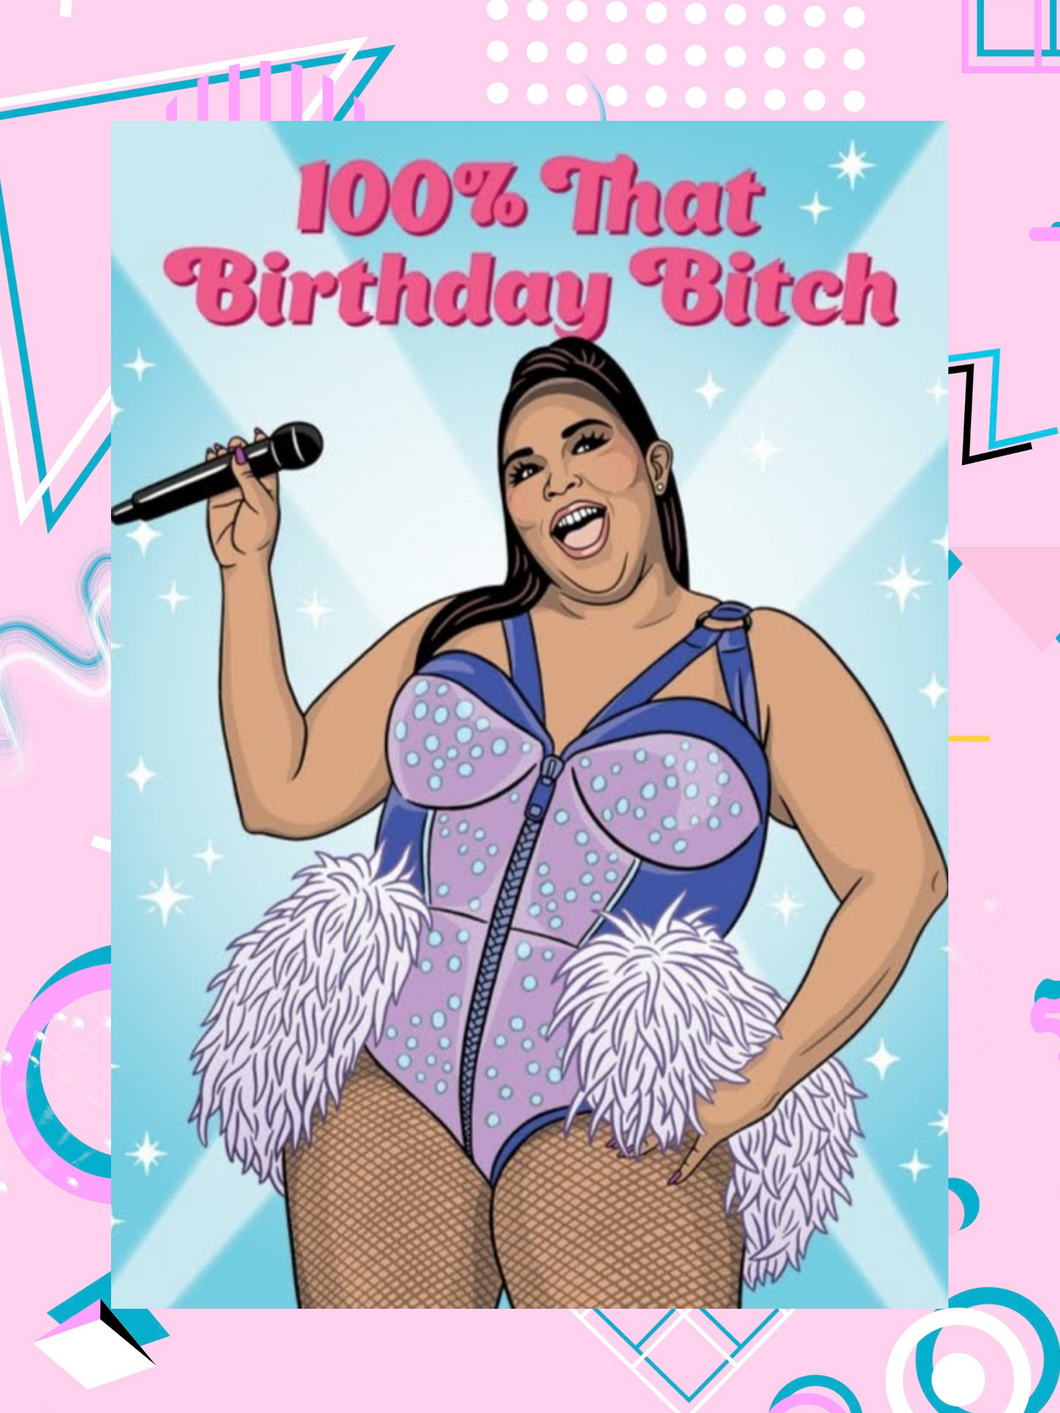 100% That Birthday Bitch Card With Illustration of Lizzo Singing